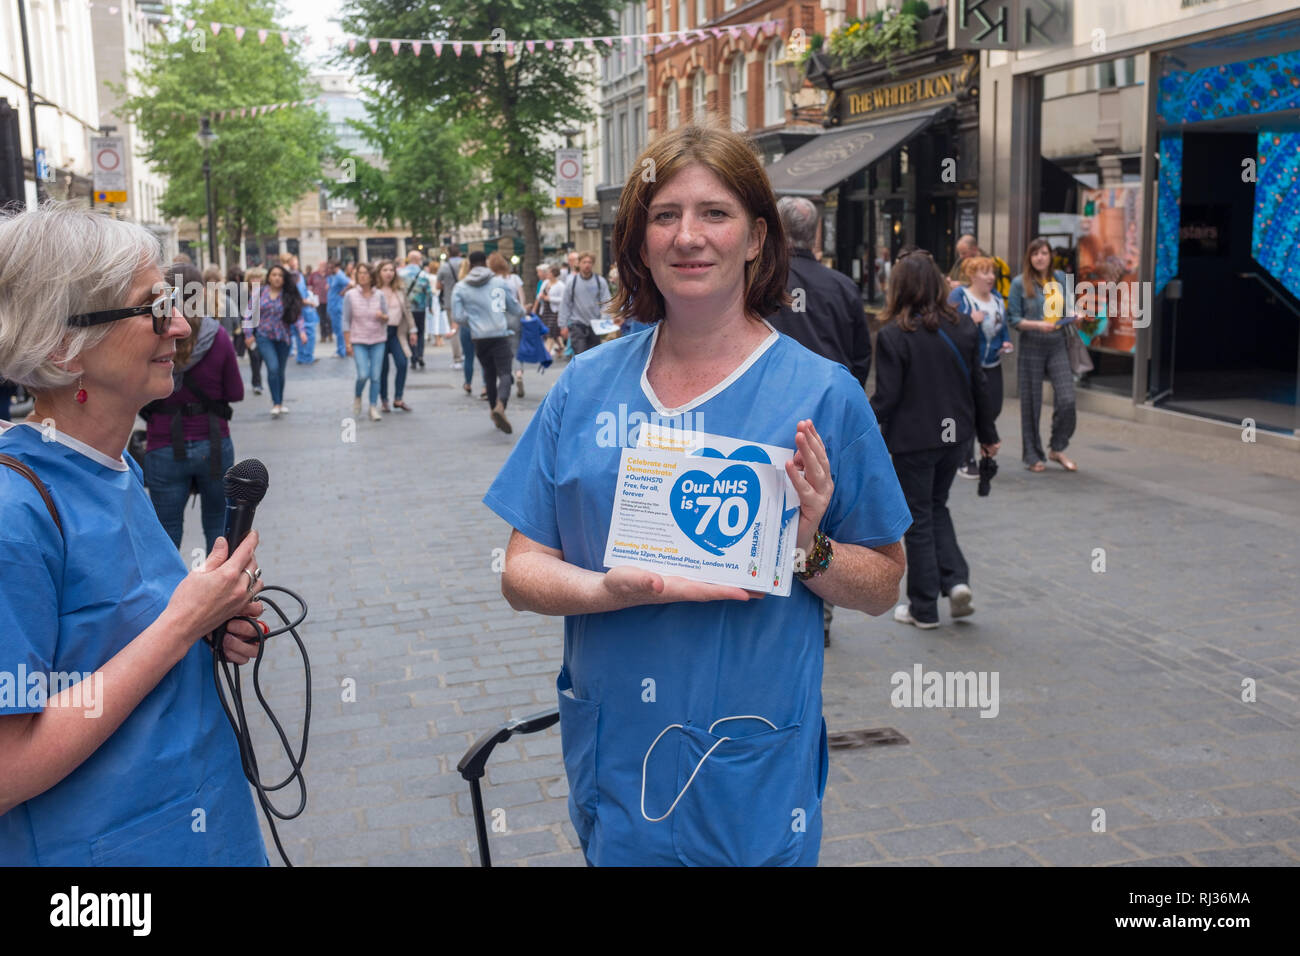 Doctors from the National Health Service (NHS) protest) against plans to privatize services Stock Photo